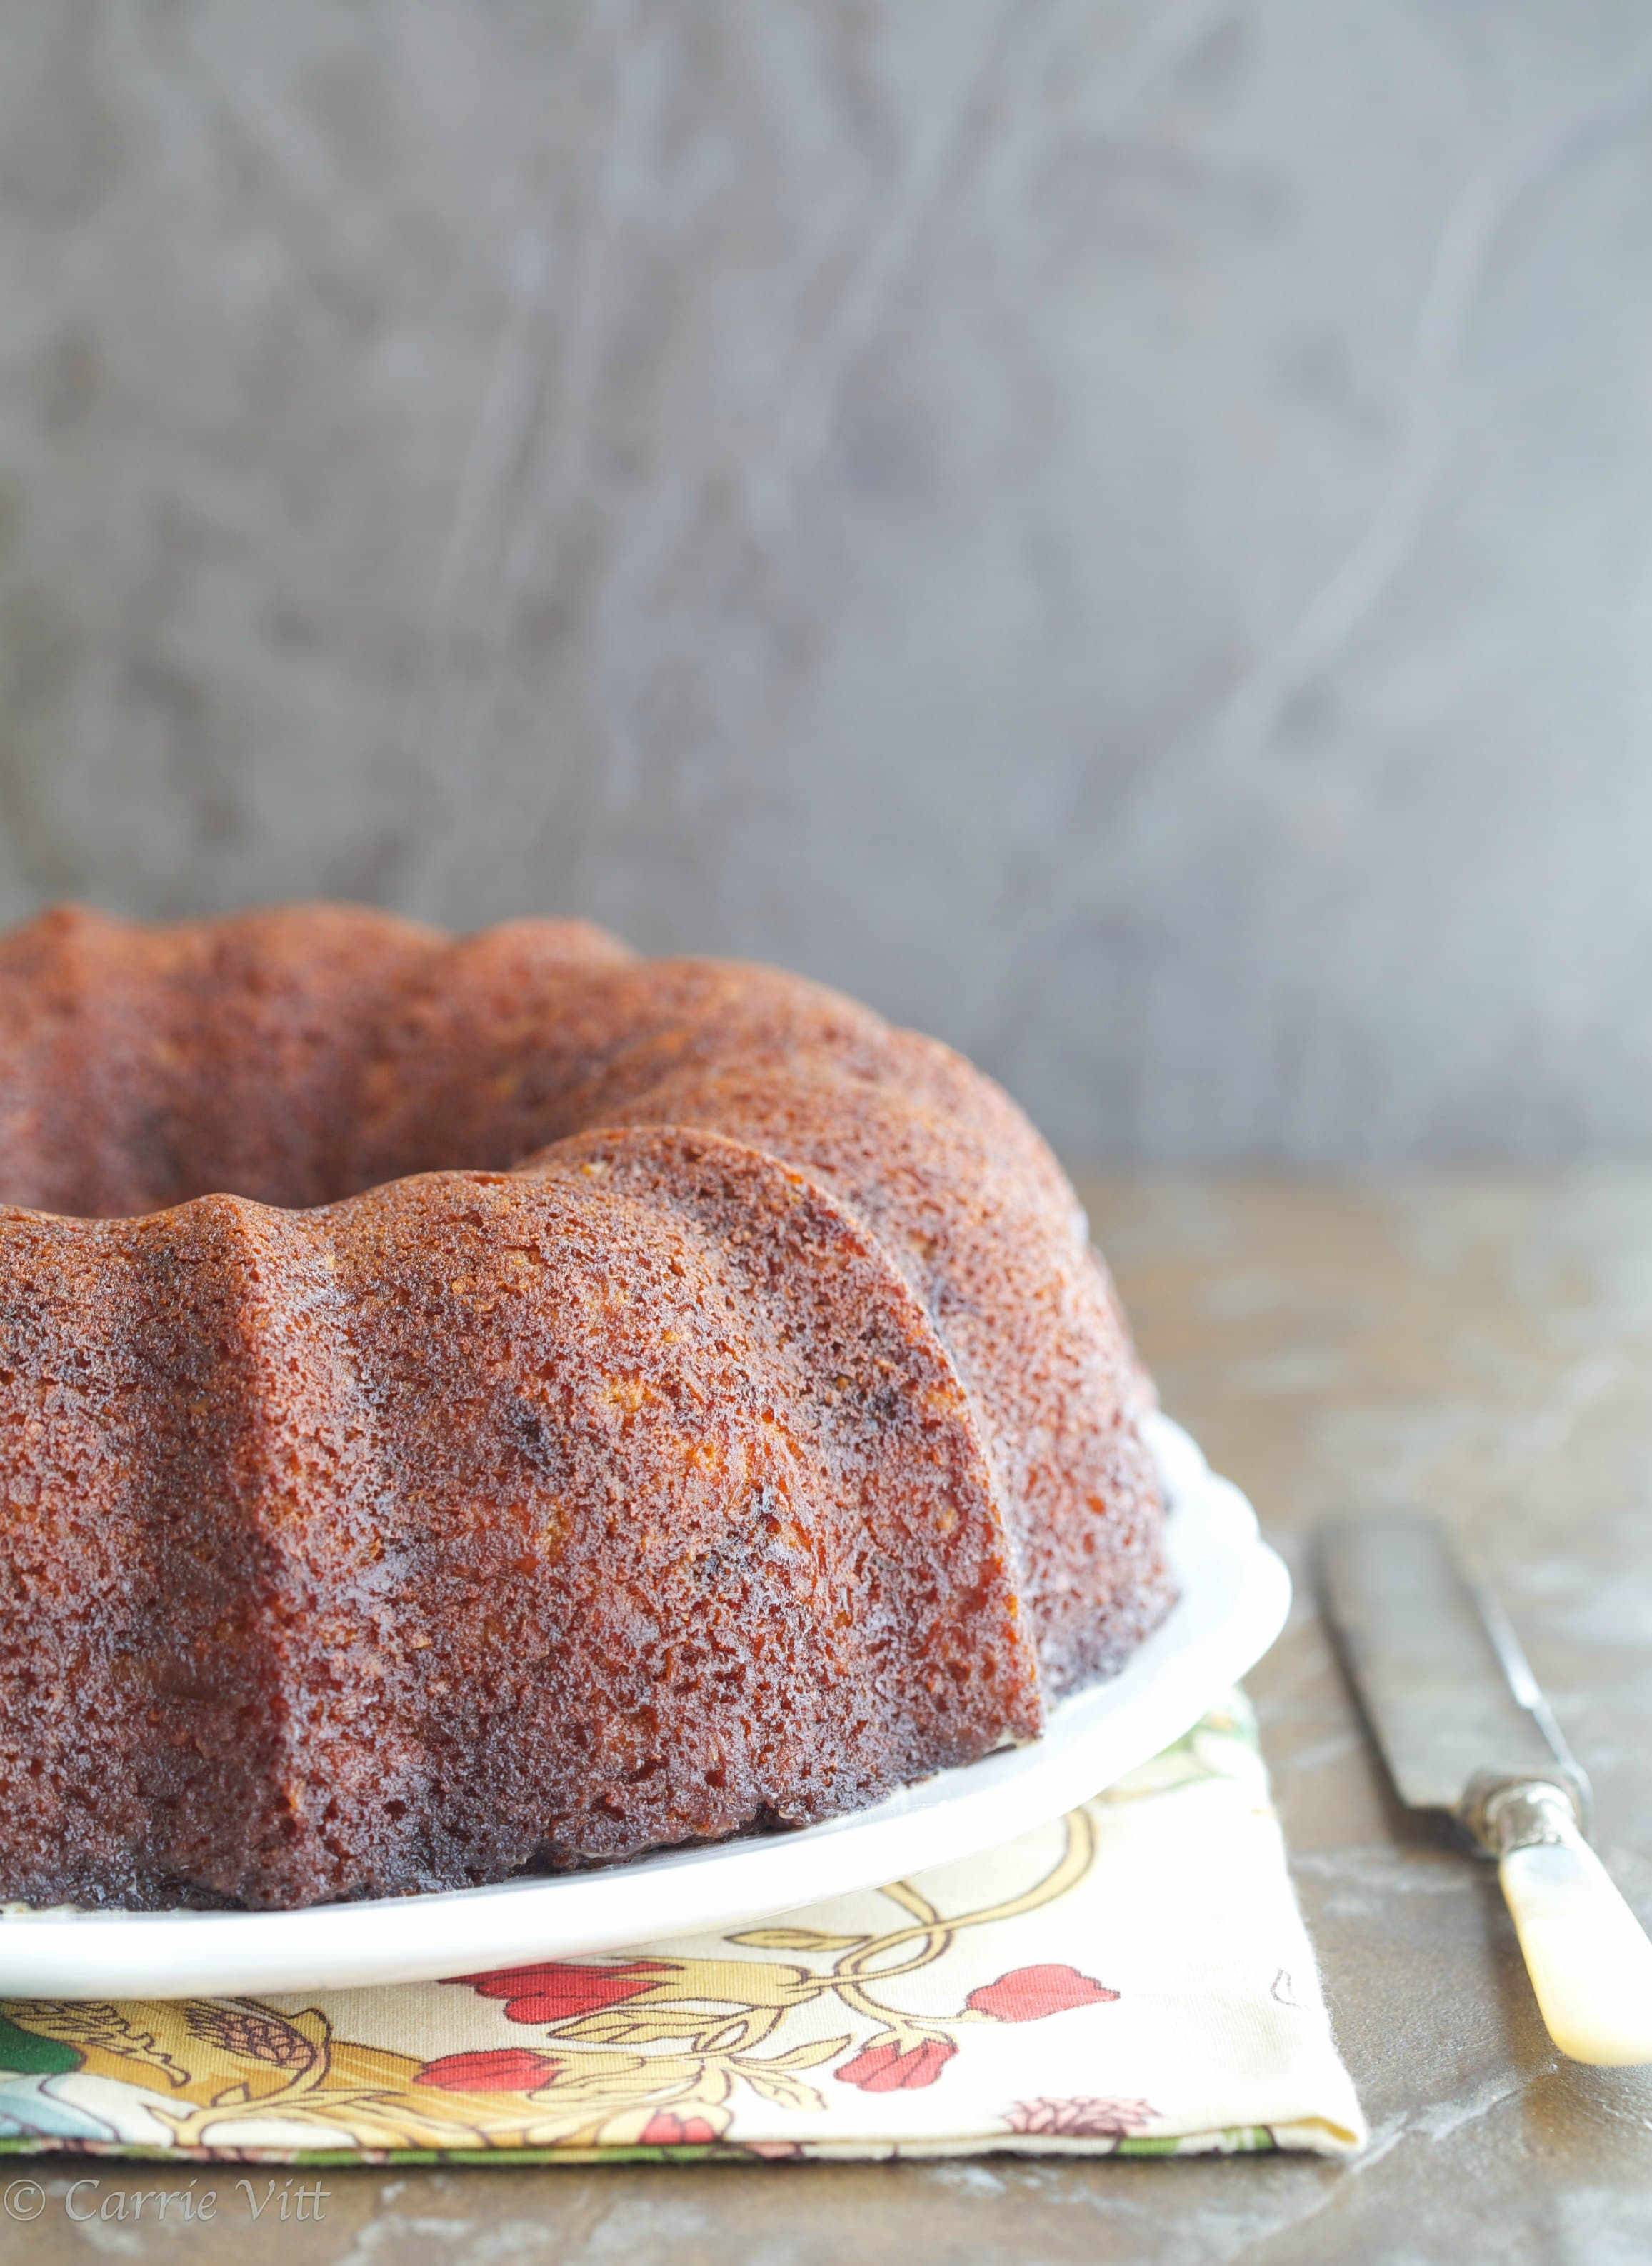 Apple Cake (Grain Free, Paleo, Gluten Free, Gaps)